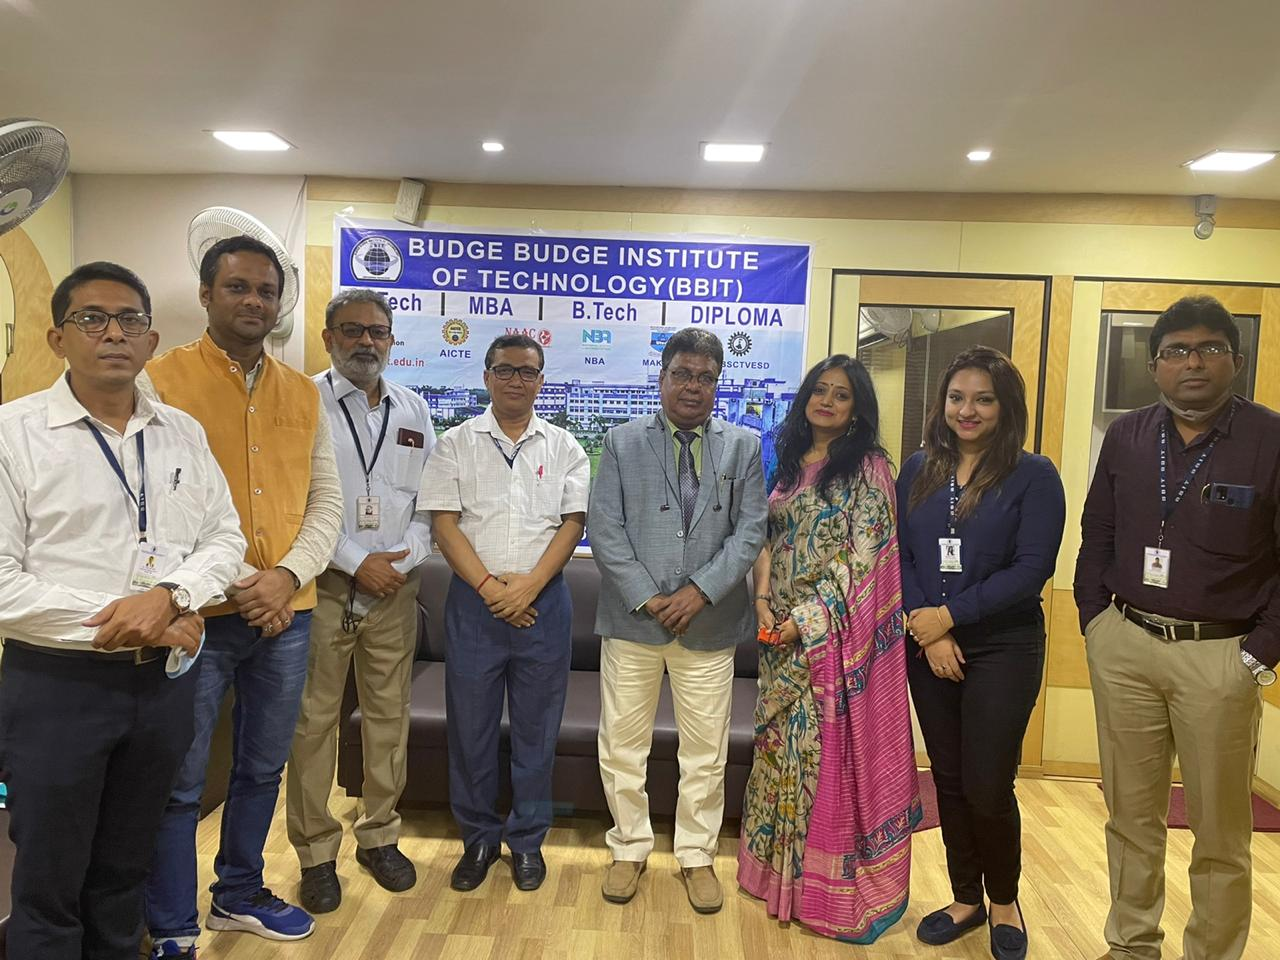 Budge Budge Institute of Technology (BBIT)